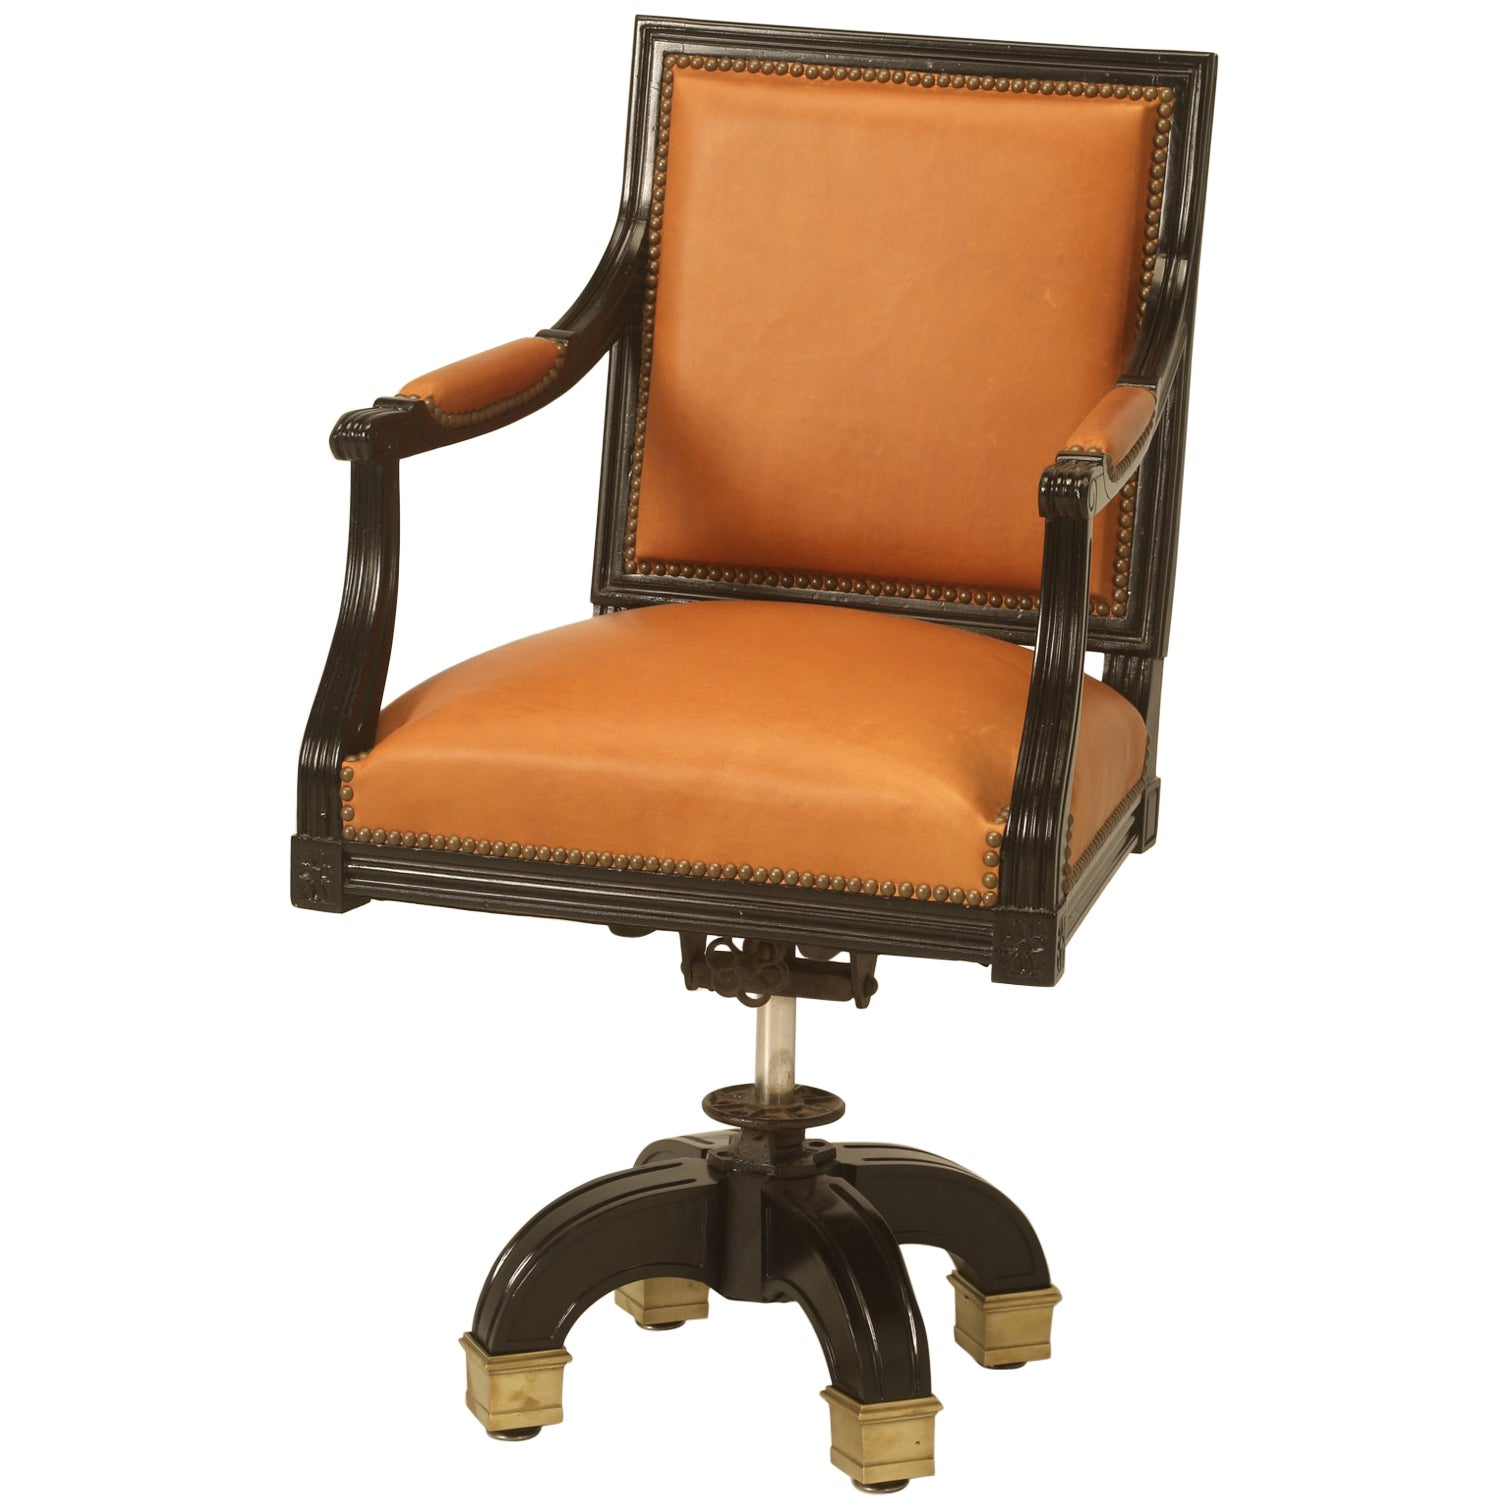 French Louis XVI Style Desk Chair Done in Ebony and Saddle Leather